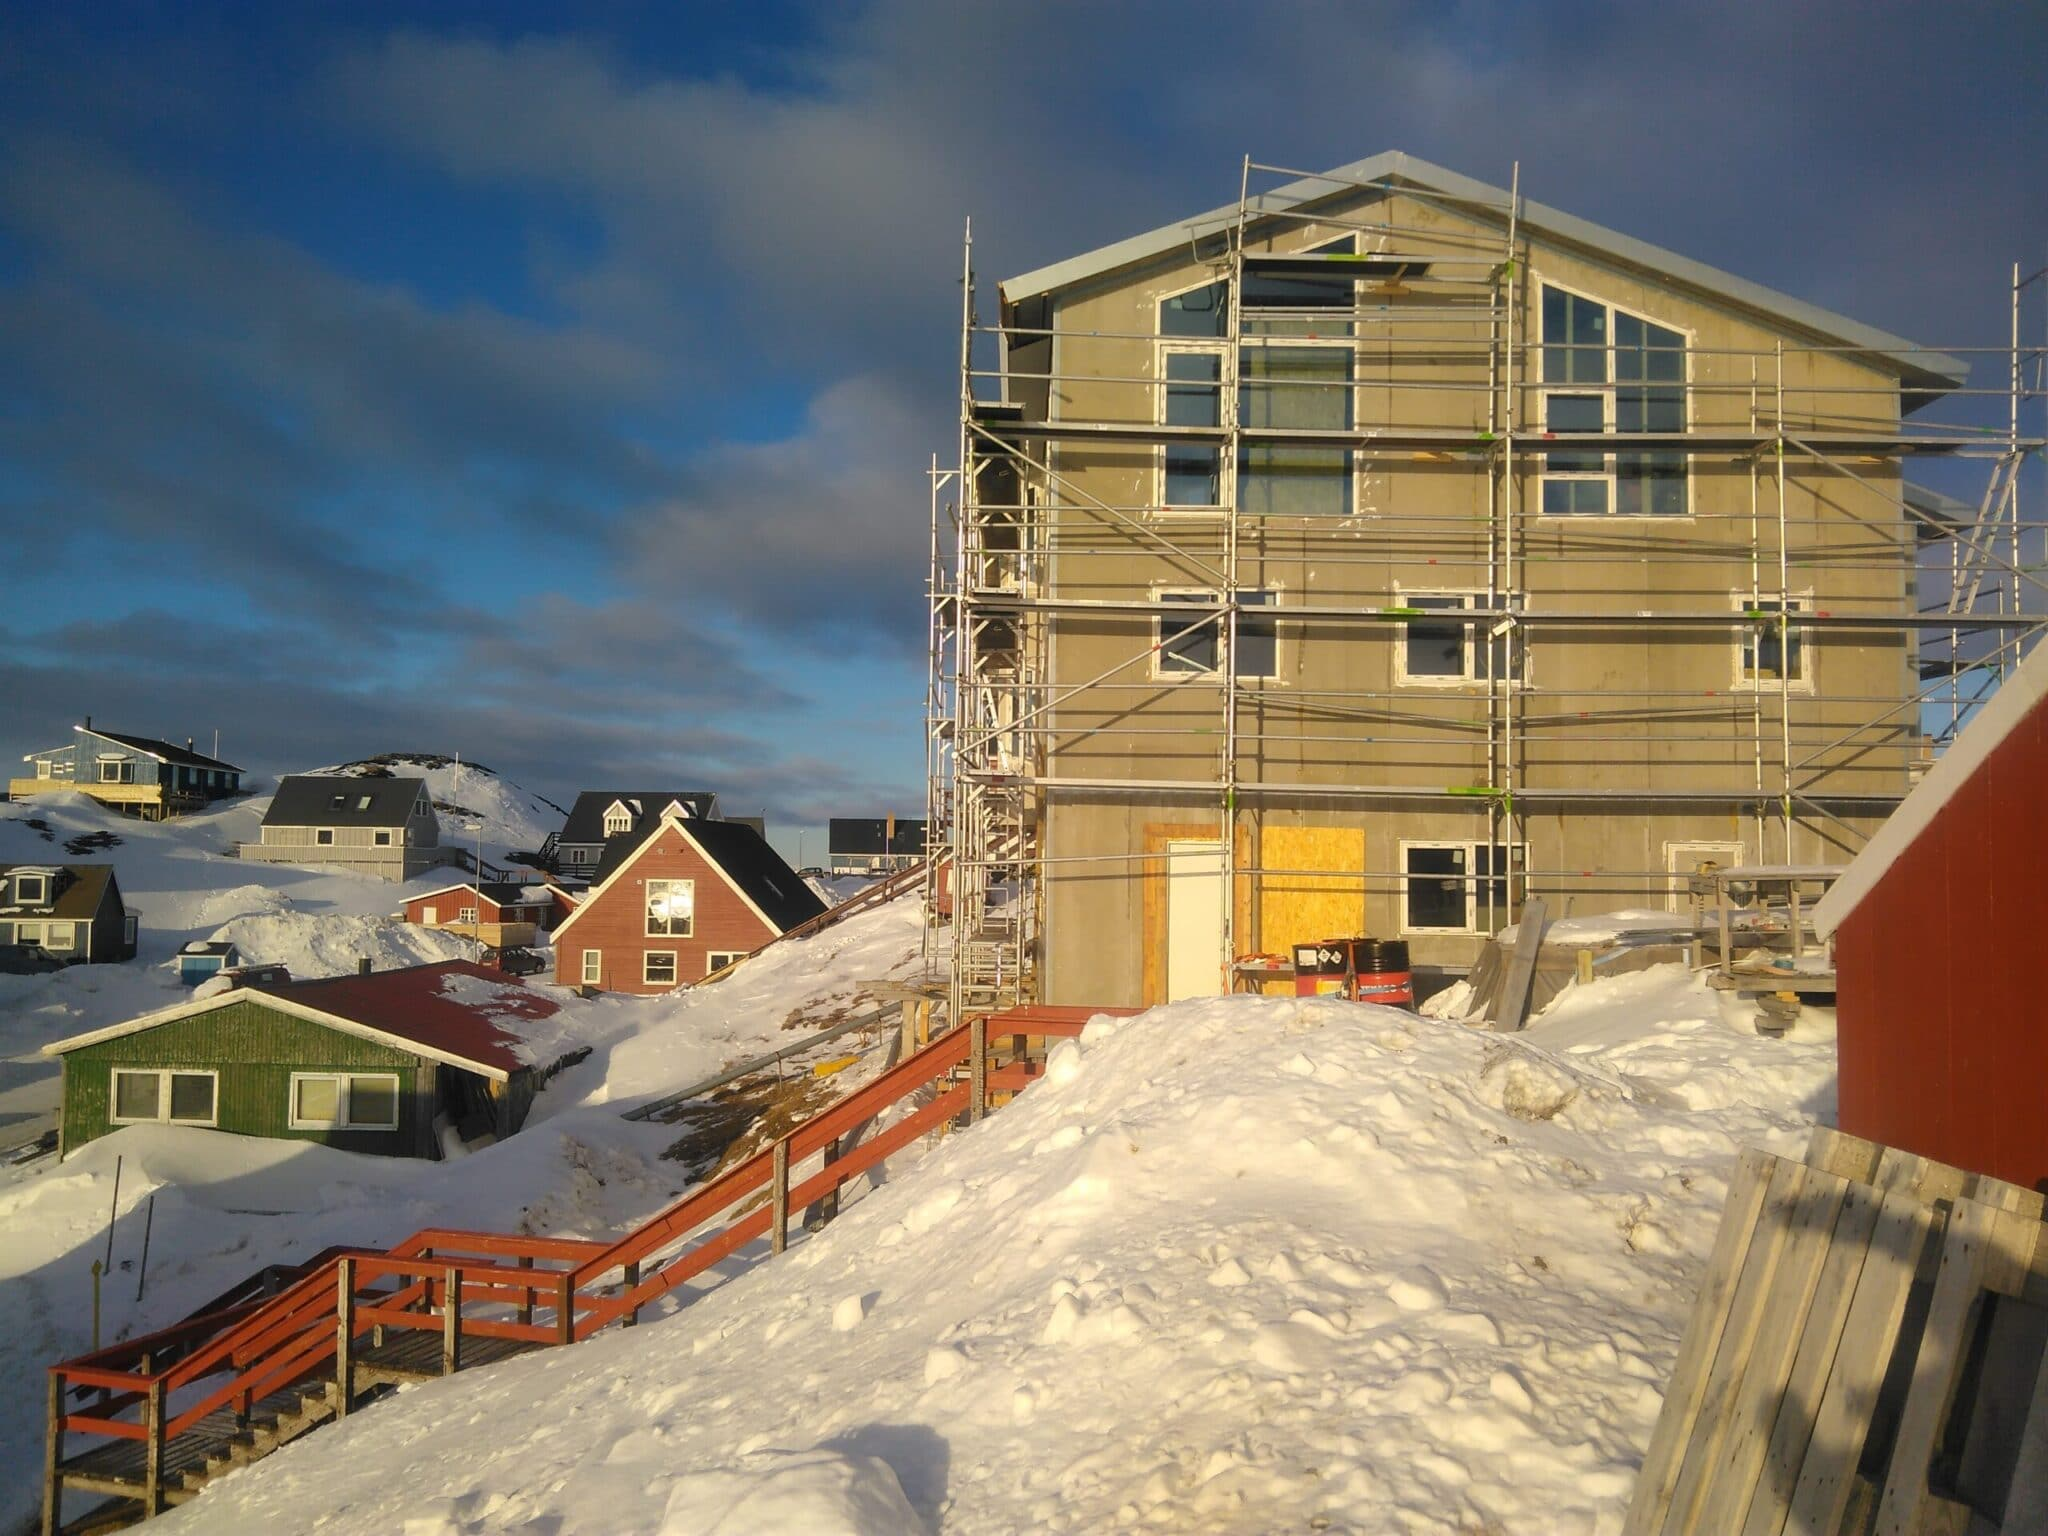 Housing Development In Nuuk Greenland ⋆ Dc System